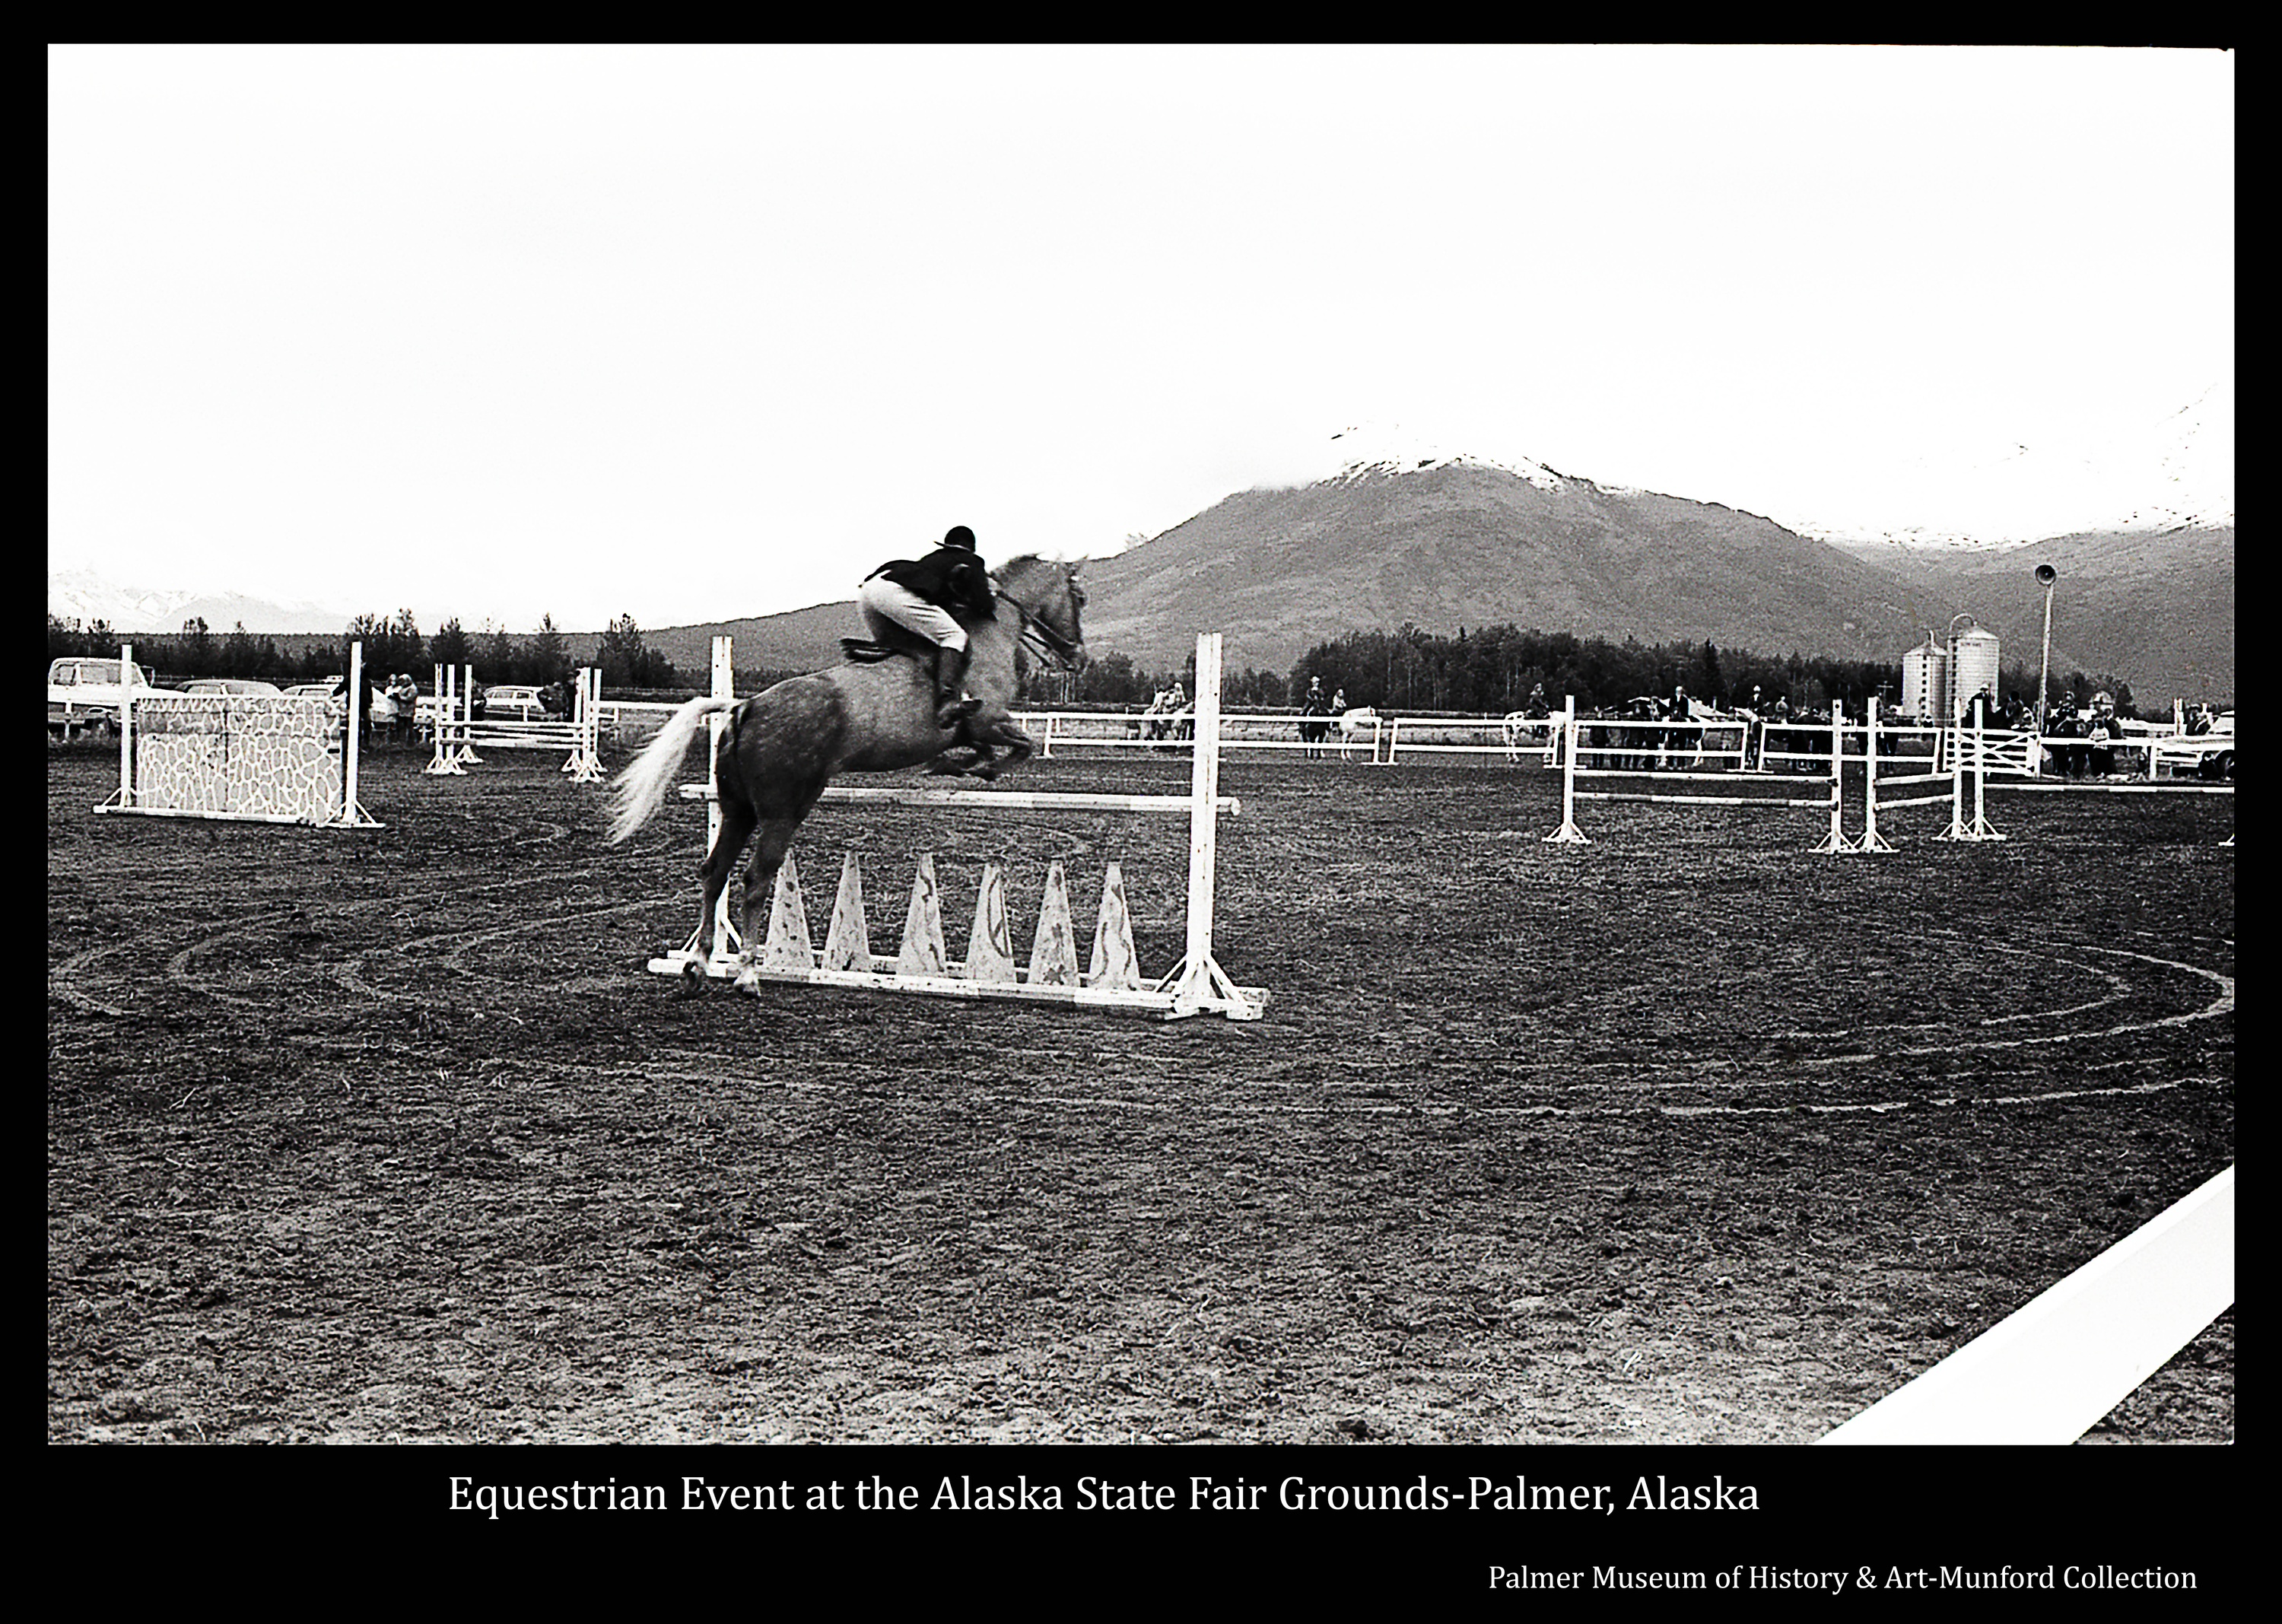 Image is of a horse and rider jumping a hurdle in the arena at the State Fairgrounds in Palmer.  People, horses and vehicles are evident outside the arena fence.  Chugach Mountains, capped with snow, are in background.